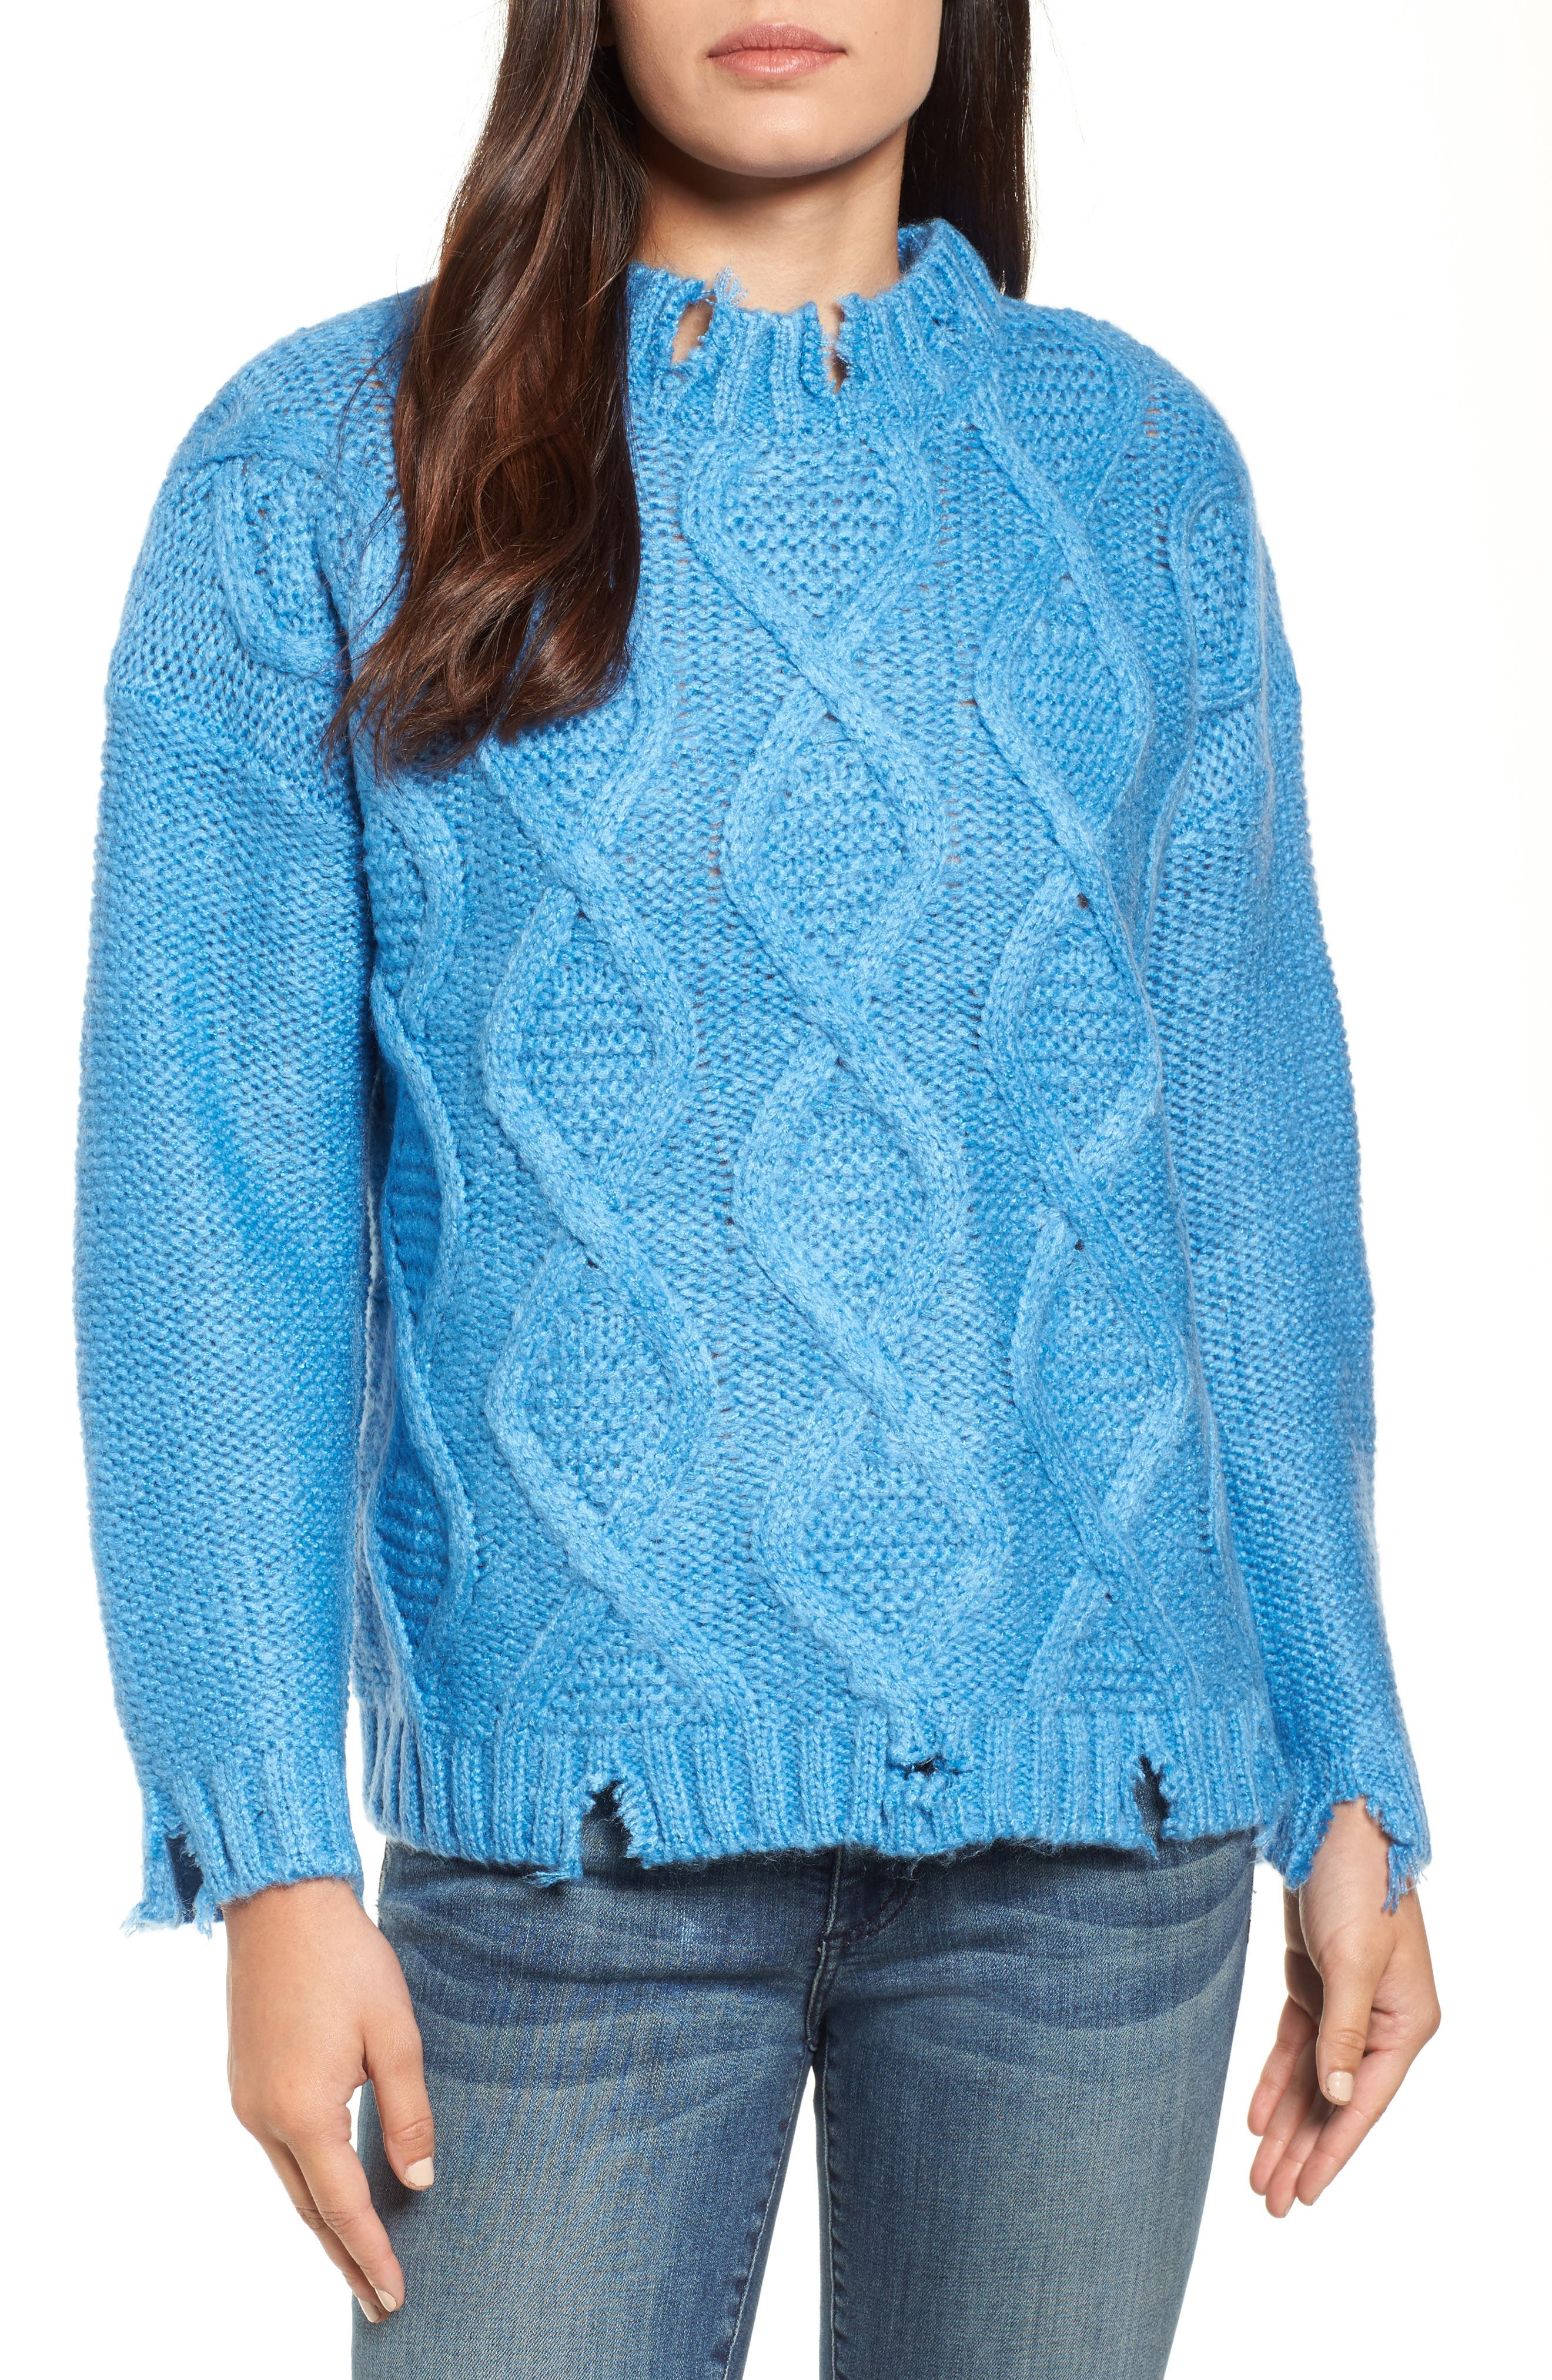 Main Image - RDI Destroyed Cable Knit Sweater